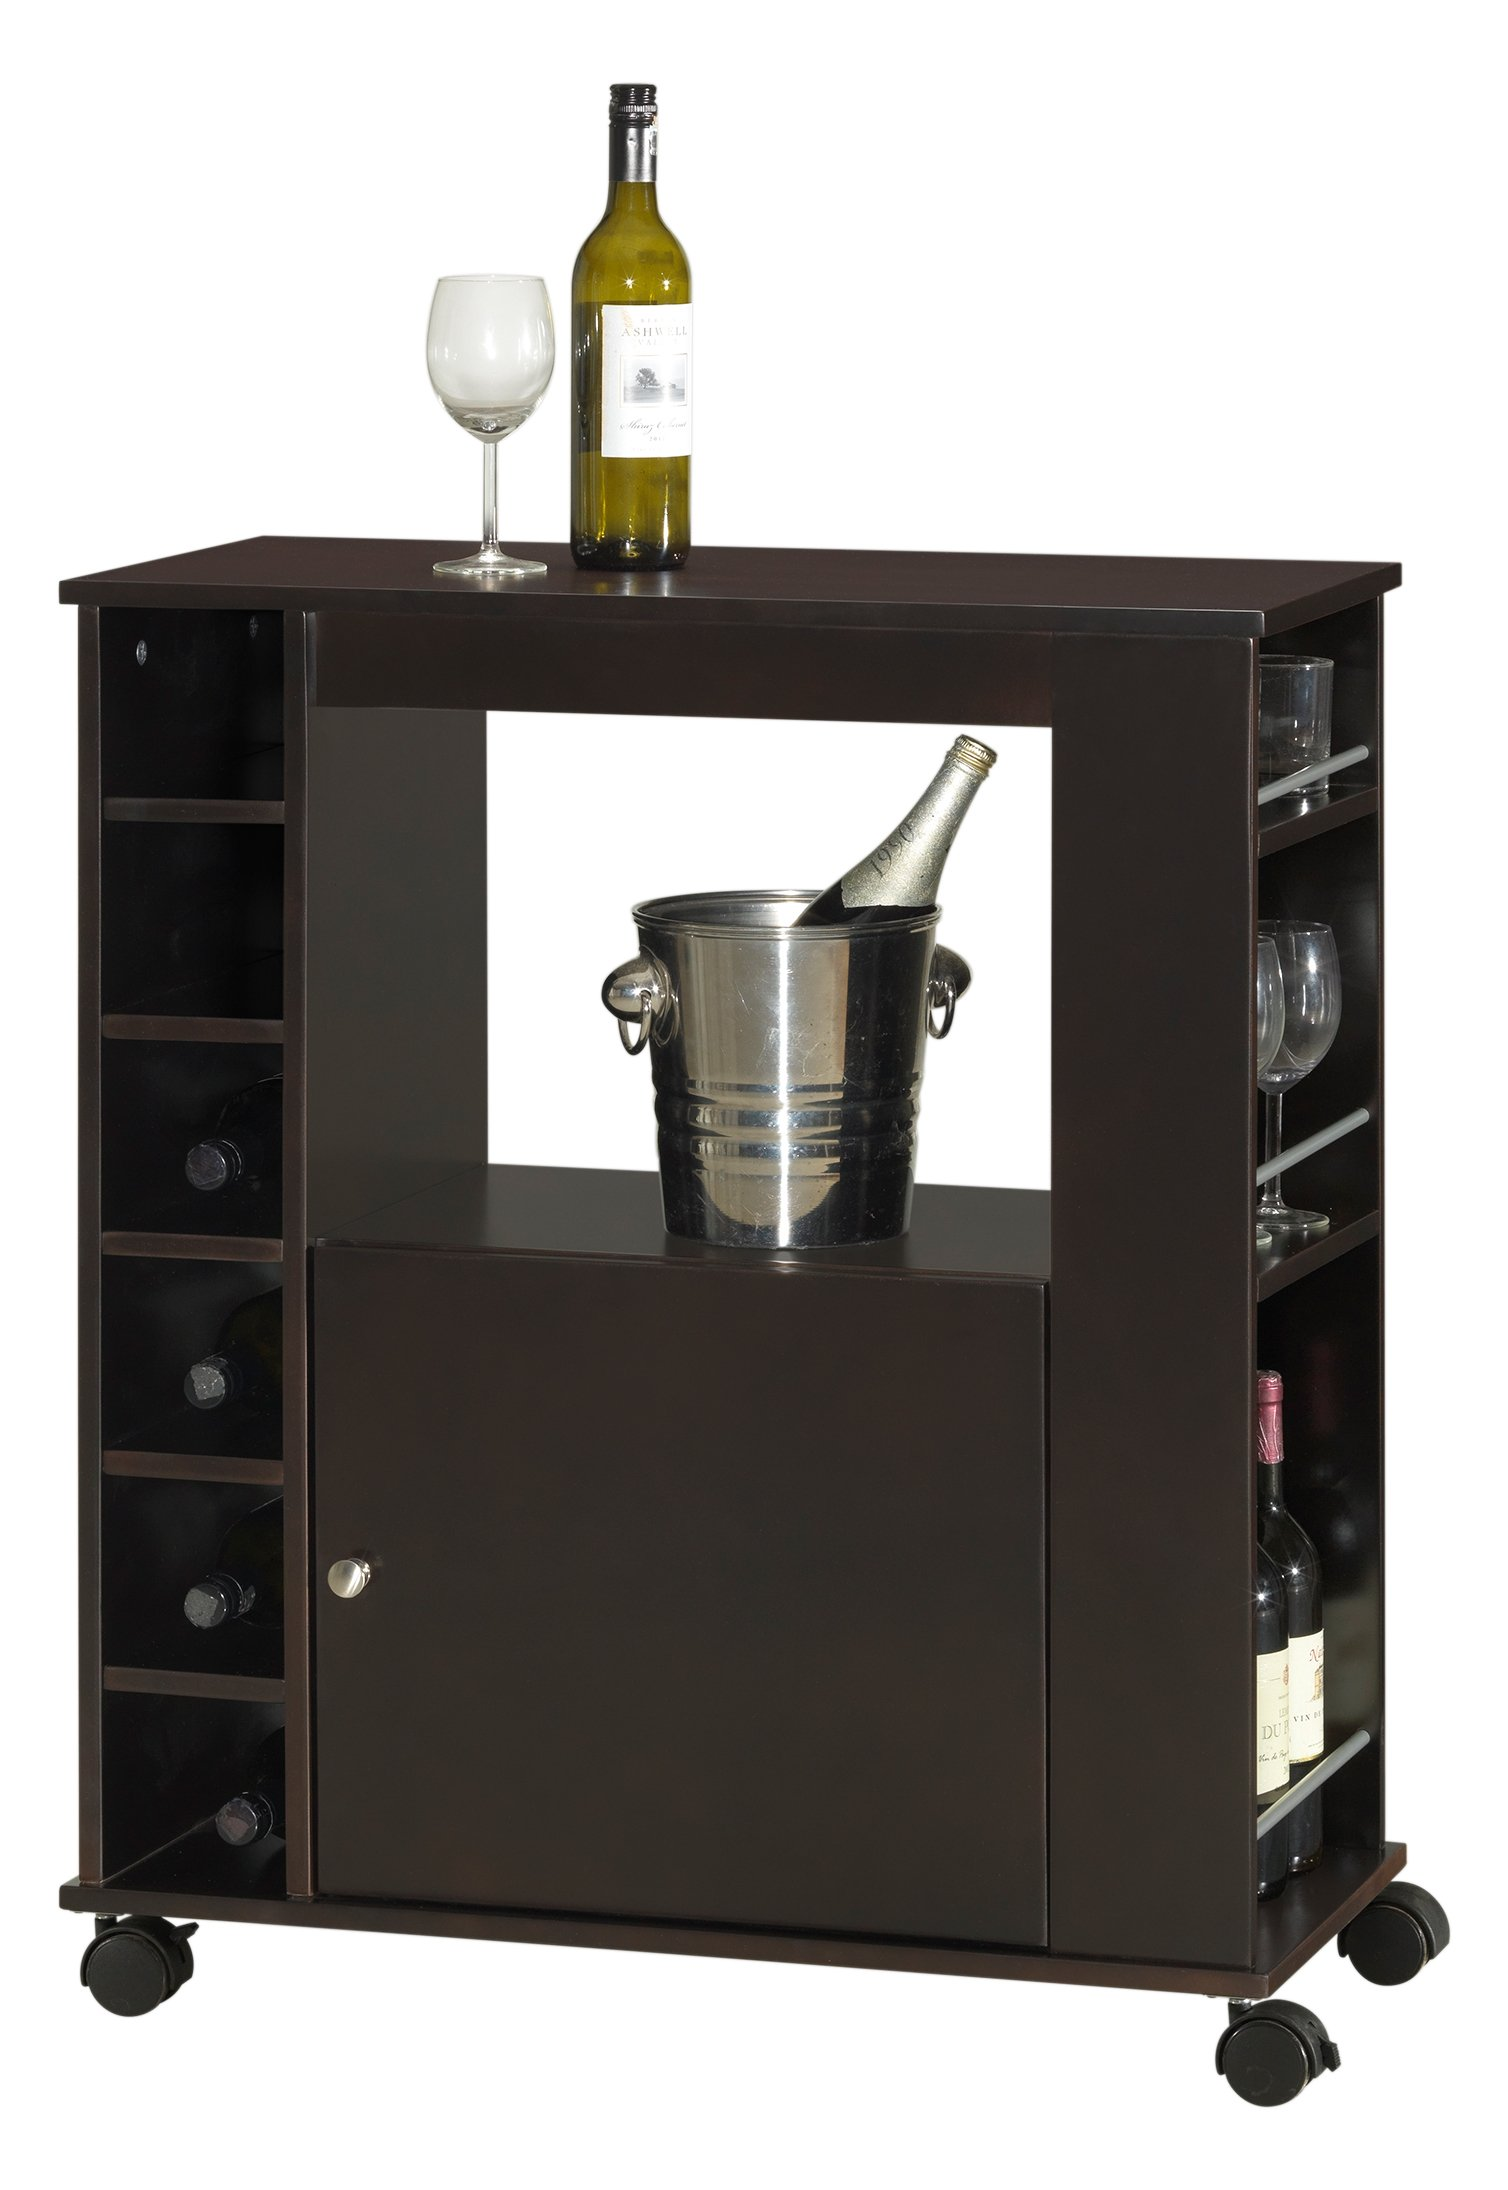 Baxton Studio Ontario Modern and Contemporary Wood Dry Bar and Wine Cabinet, Dark Brown by Baxton Studio